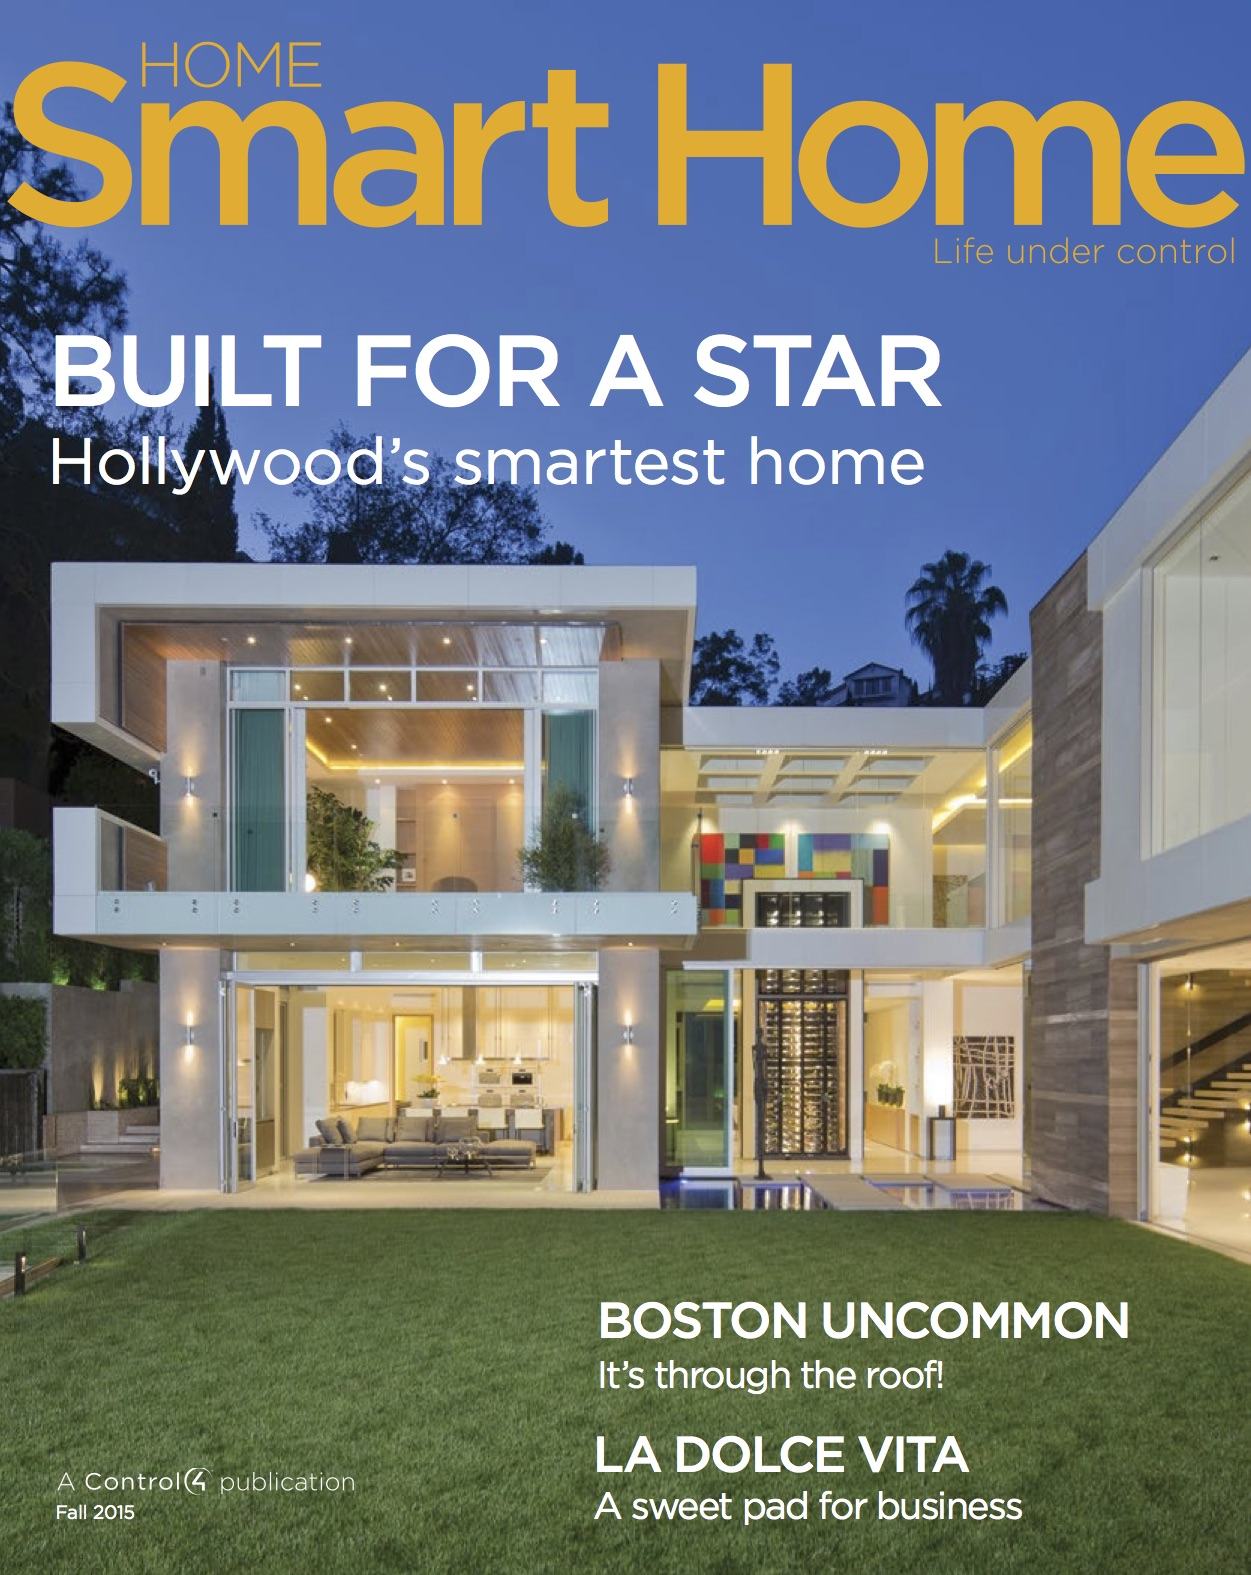 Home Smart Home Page 1.jpg